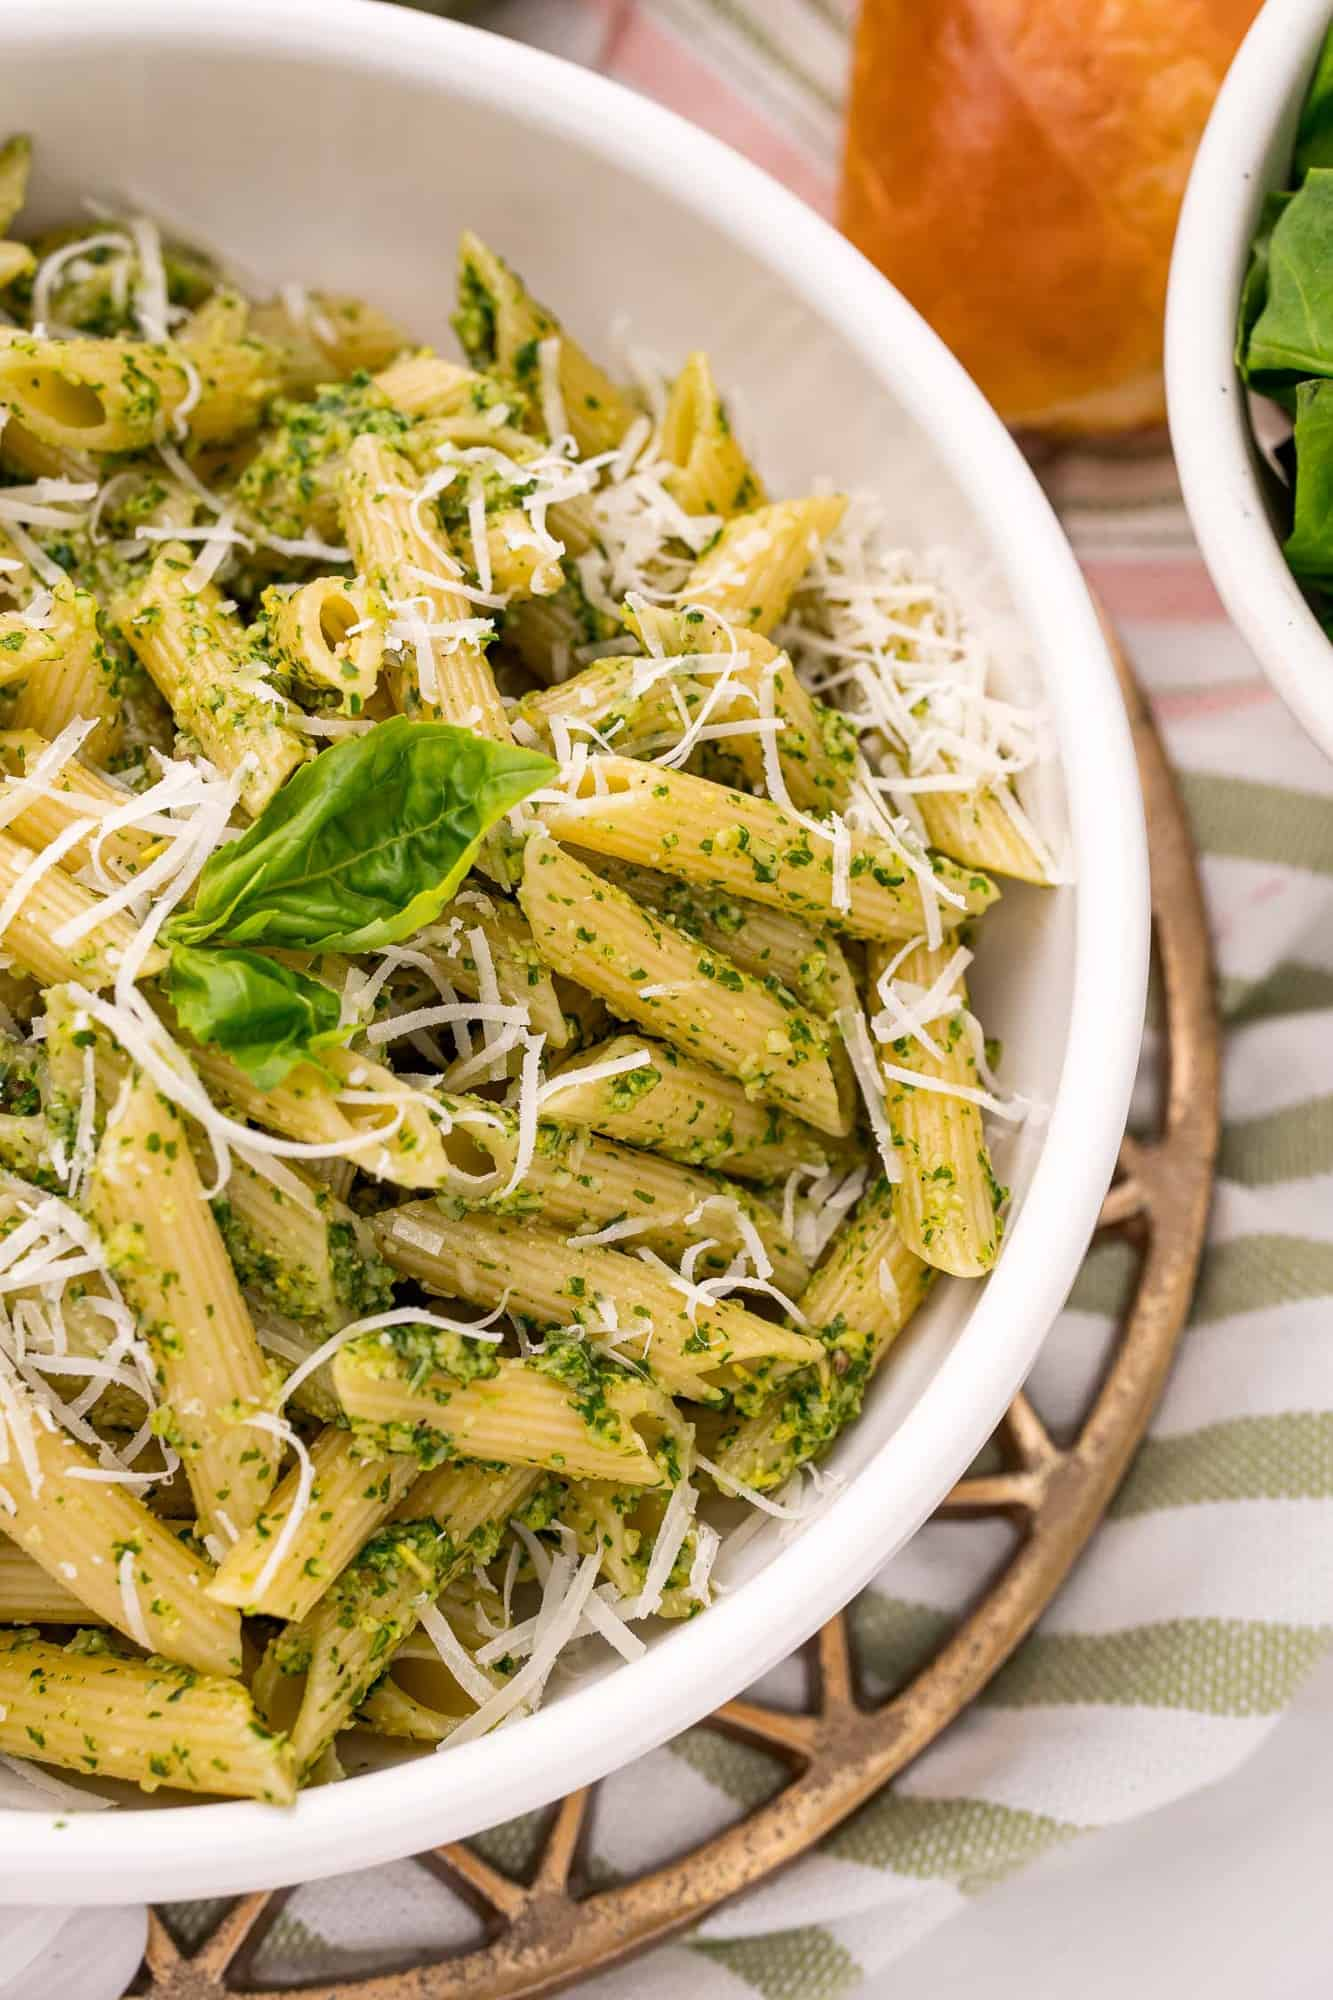 Penne pasta in a white bowl coated with pesto.